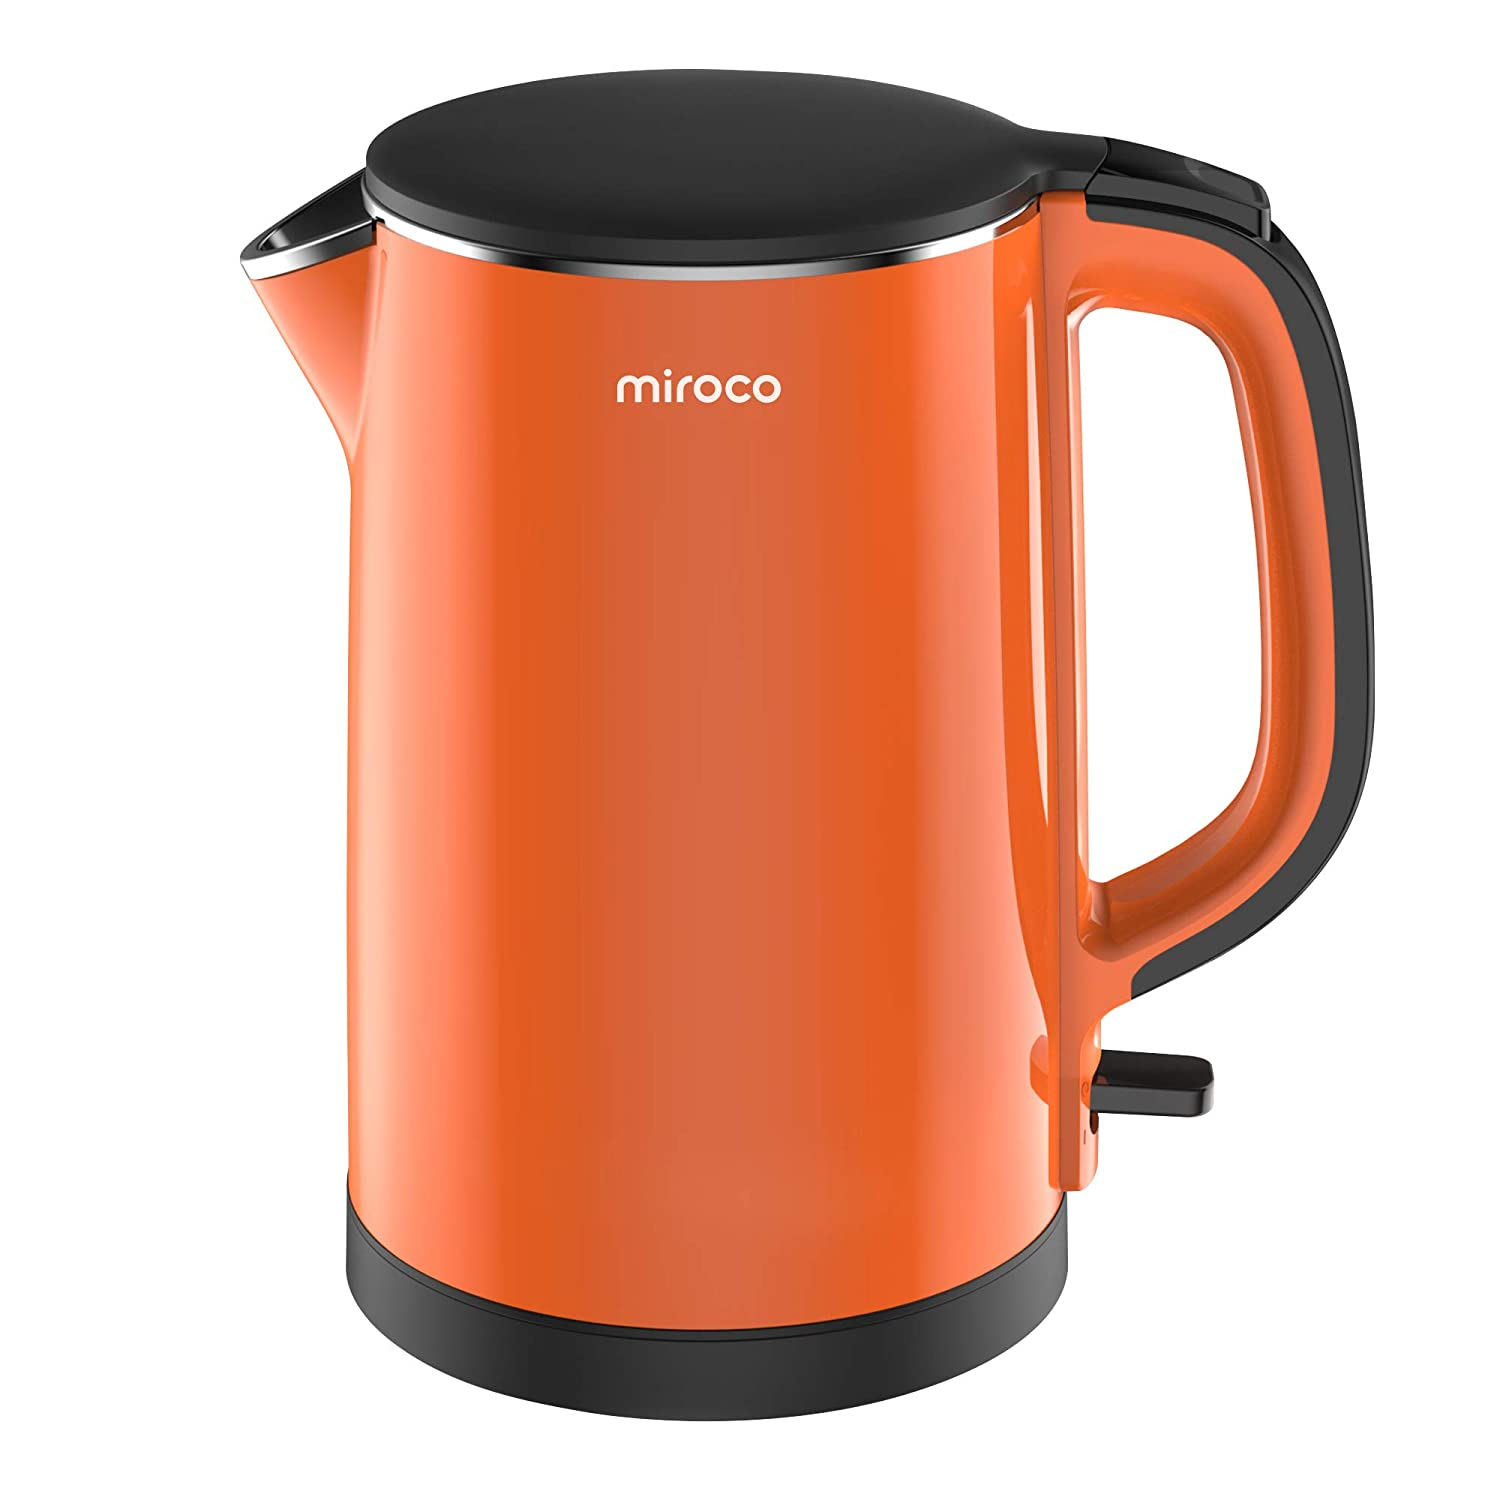 Miroco Electric Kettle, Double Wall 100% Stainless Steel BPA-Free Cool Touch Tea Kettle with 1500W Fast Boiling water, Overheating Protection, Cordless with Auto Shut-Off & Boil Dry Protection-Orange